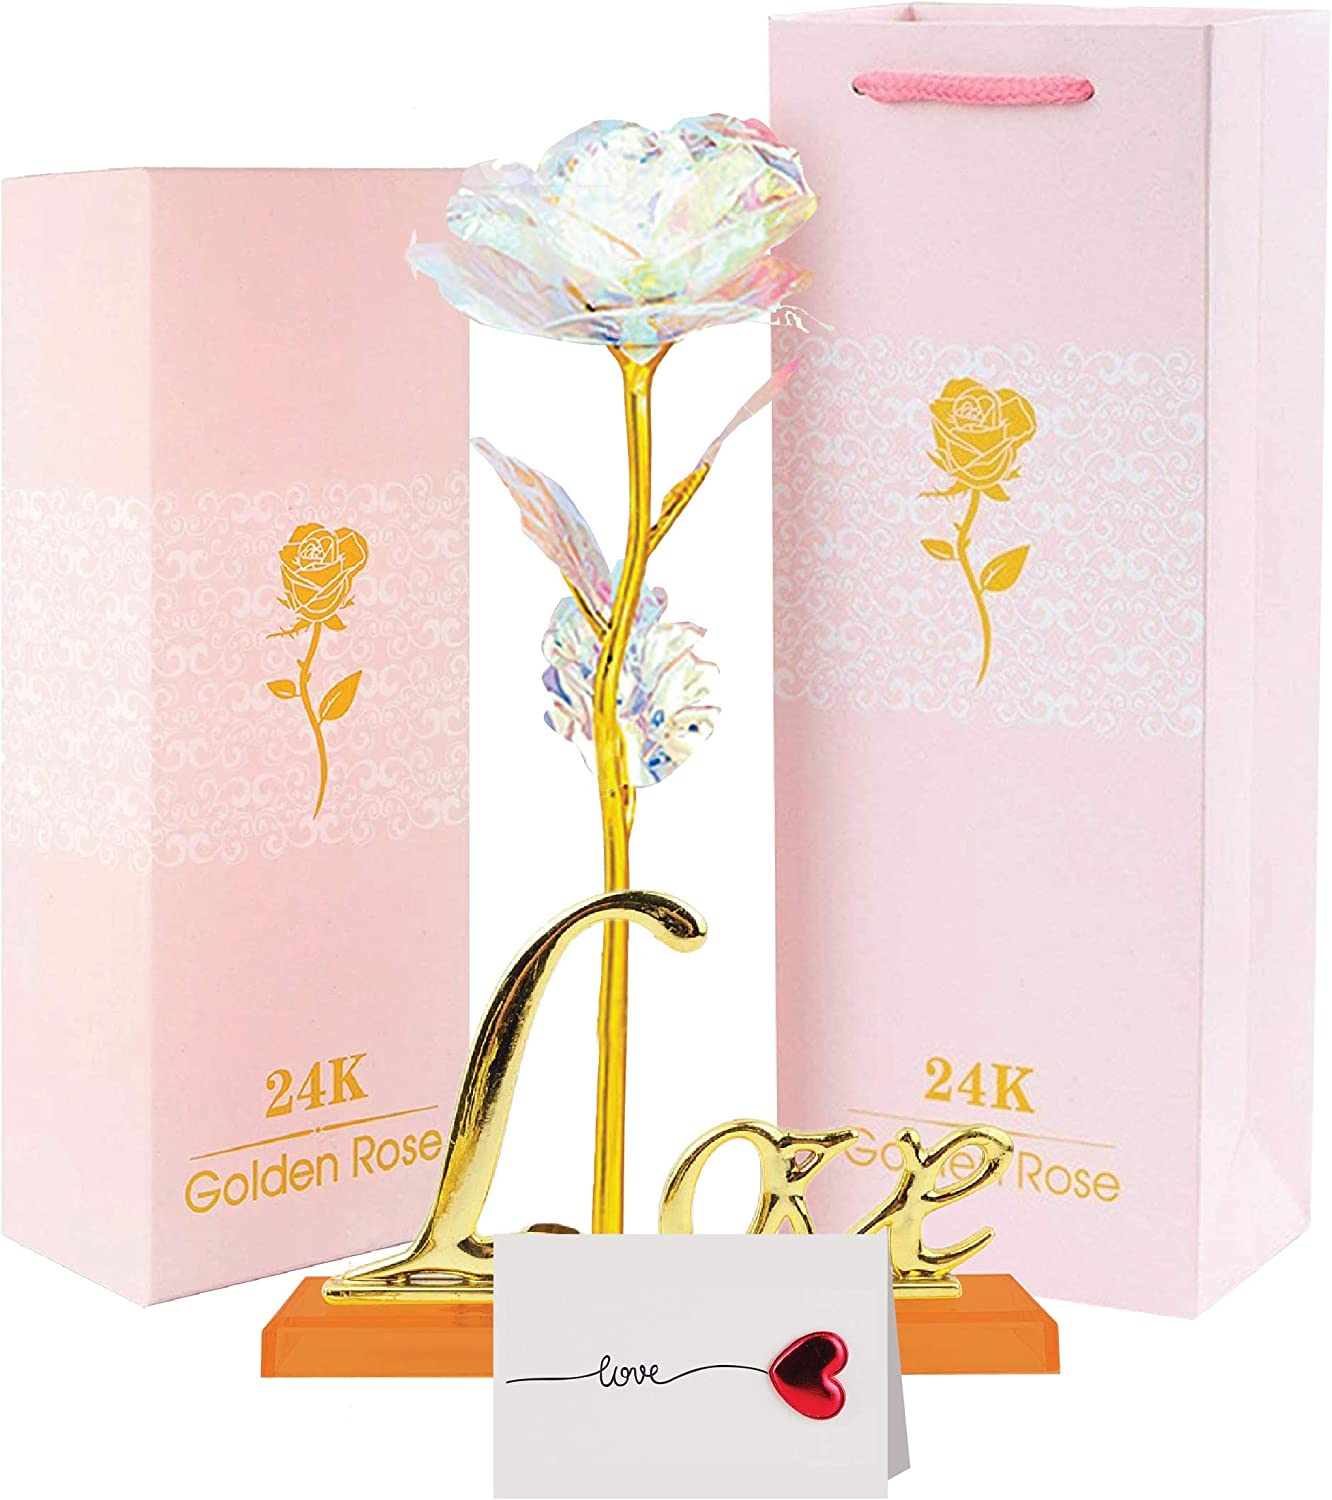 Galaxy Rose Flower 35% OFF Gift Valentine's Super sale period limited Day - In Mother's Presents